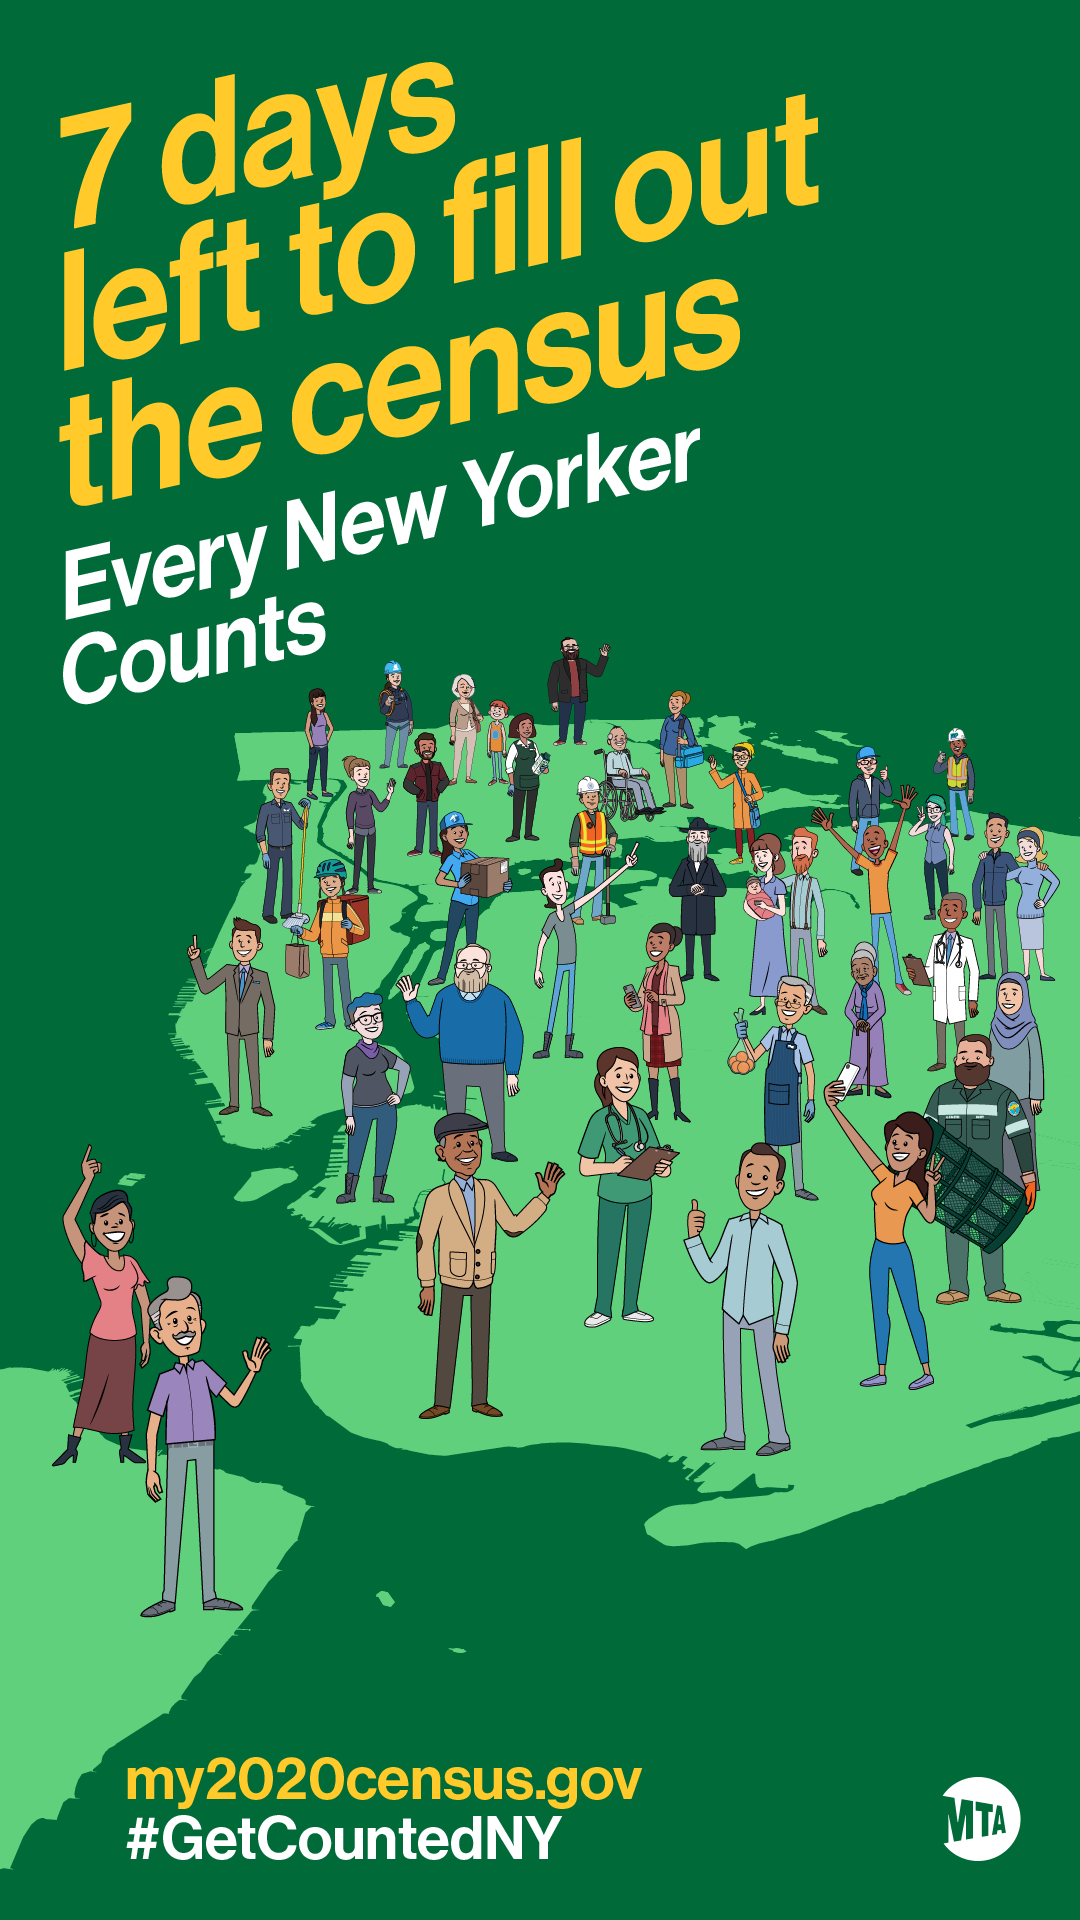 MTA Launches New Countdown Campaign To Fill Out 2020 Census